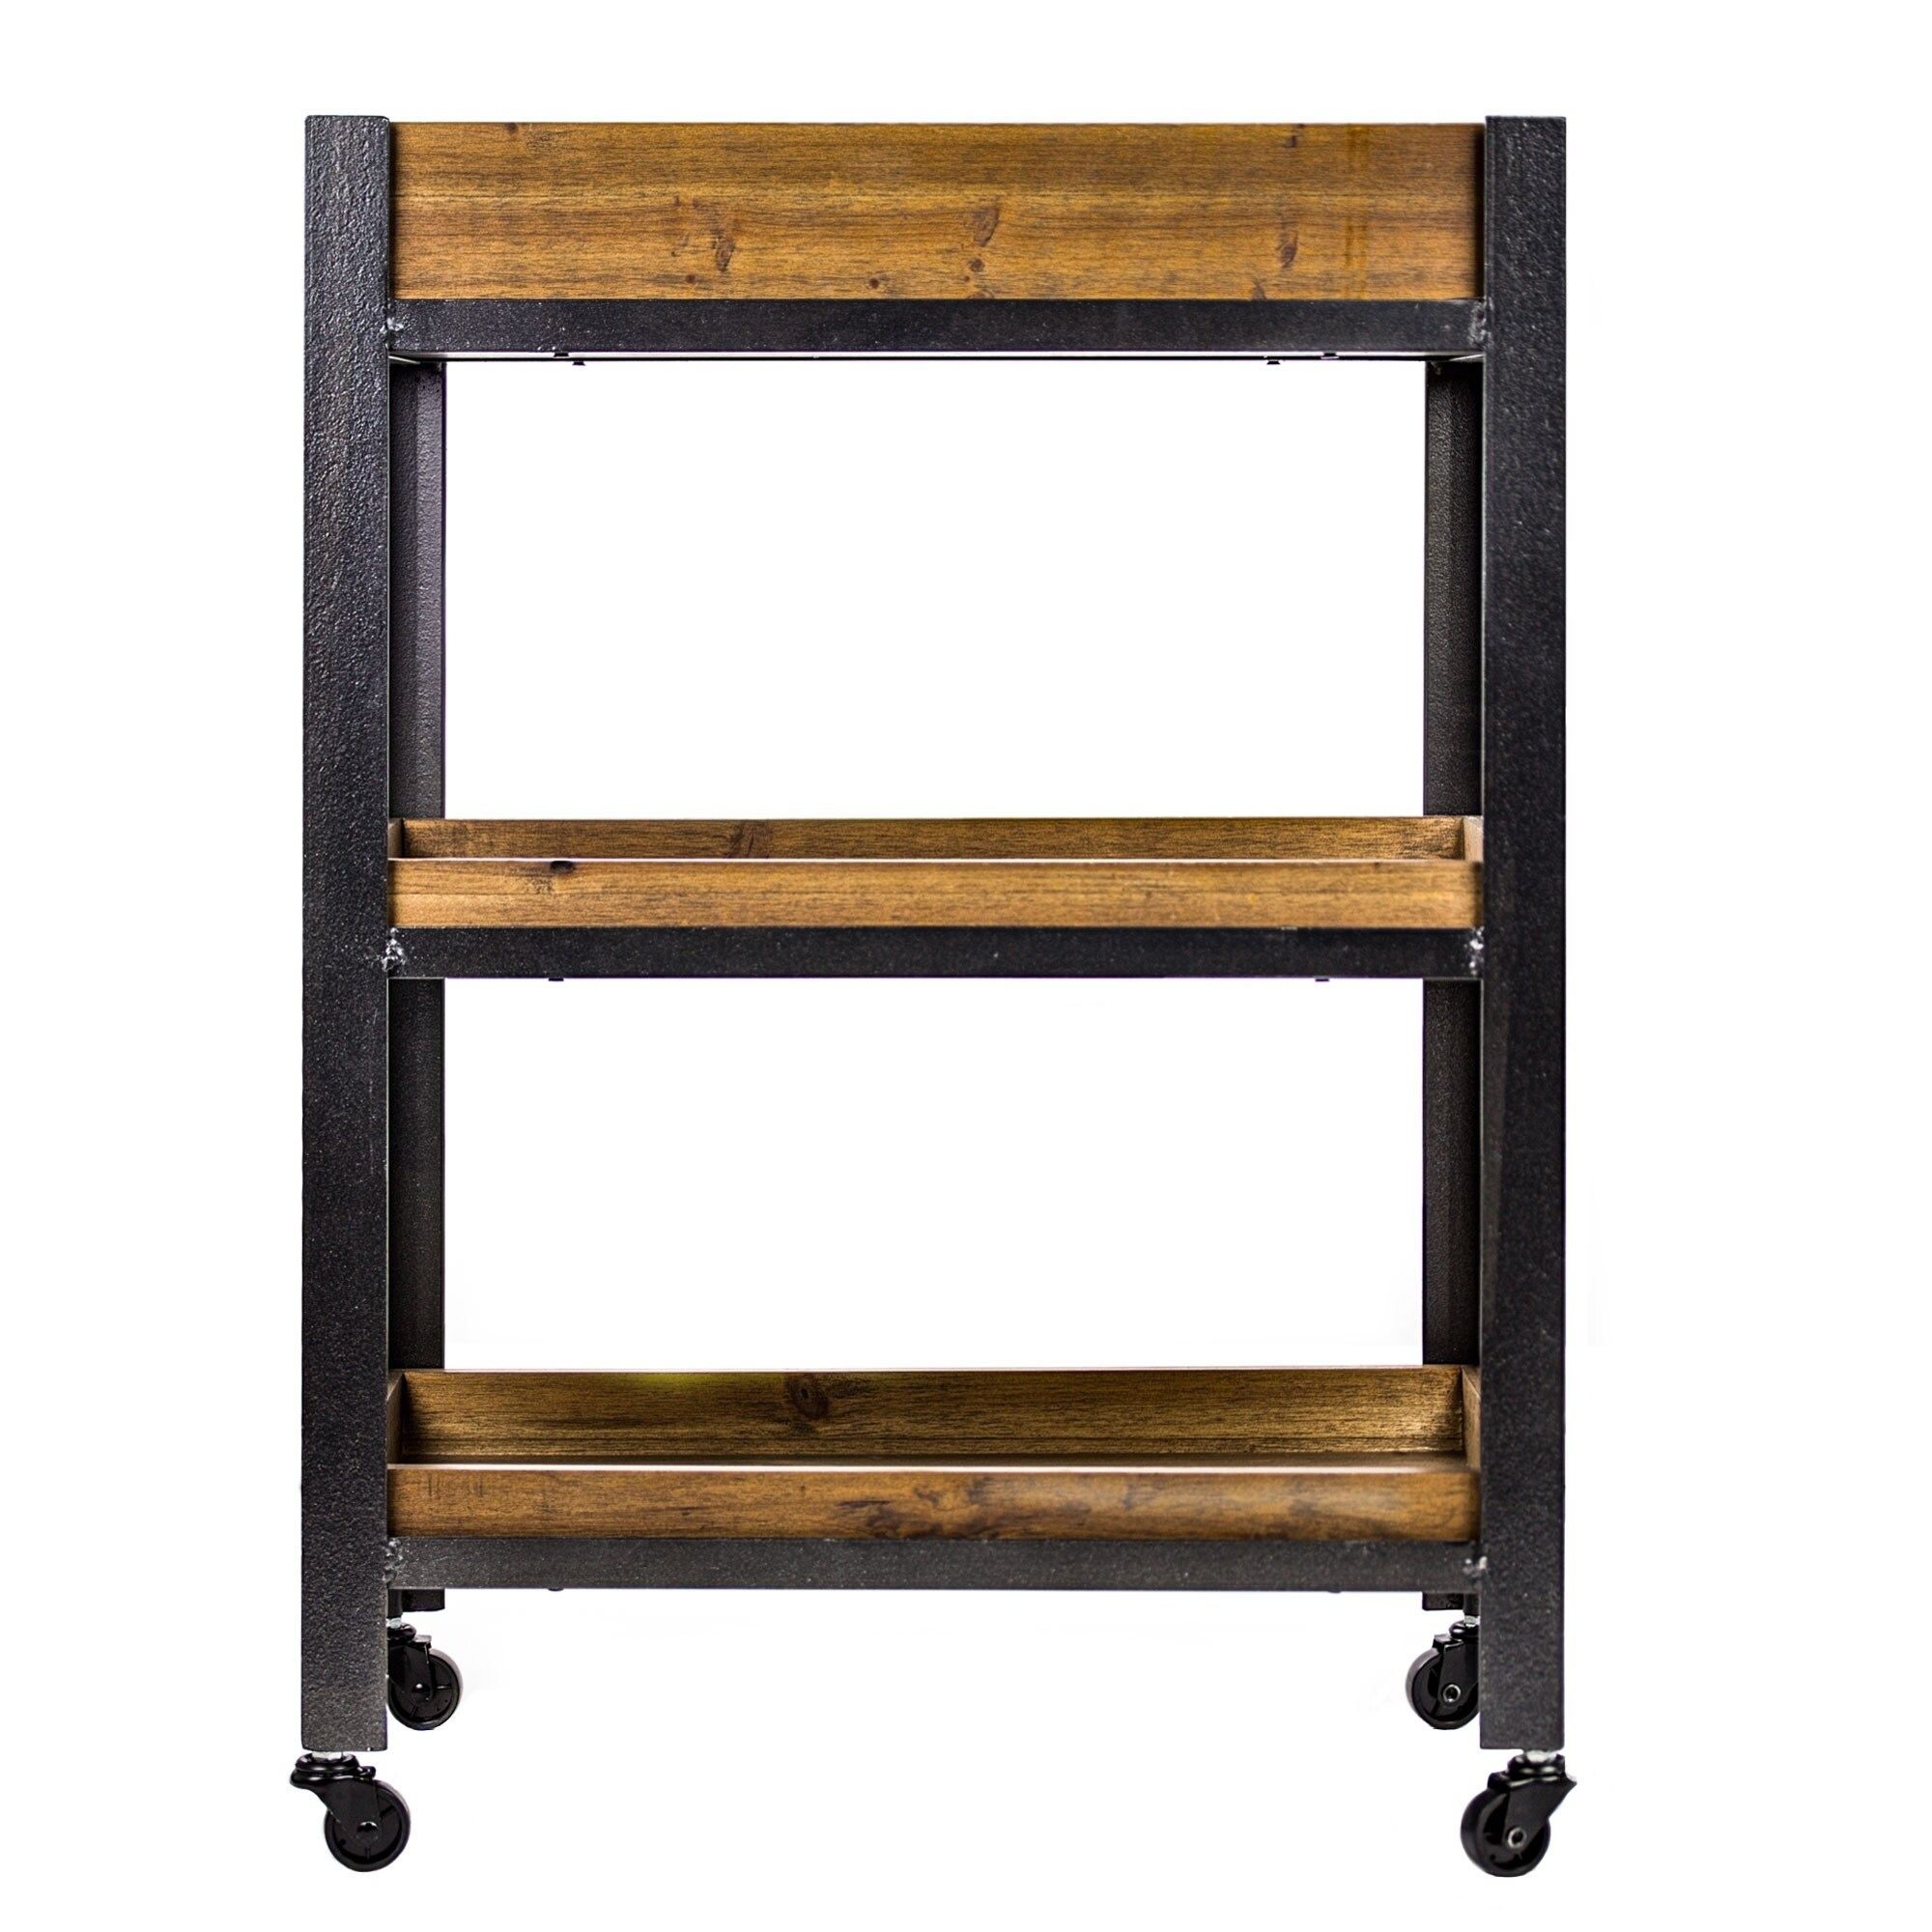 Shop Wood Metal Rolling Storage Cart With Shelves   Farmhouse Furniture    Free Shipping Today   Overstock.com   22851890